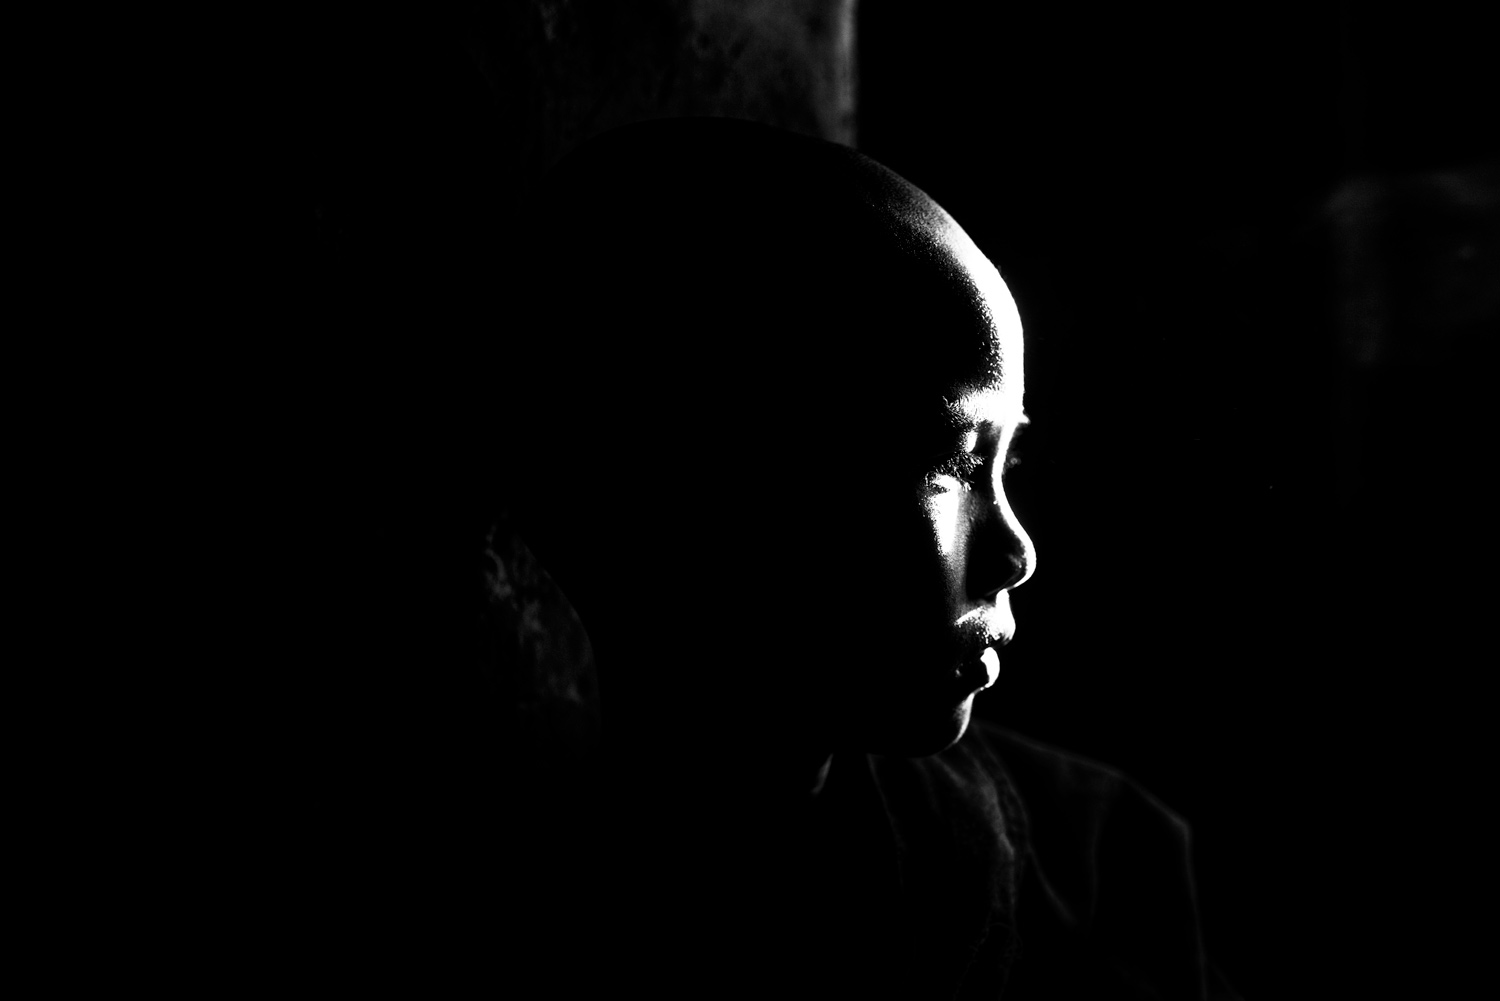 Experimenting with Low Key Black and White Photography Novice Monk Portrait